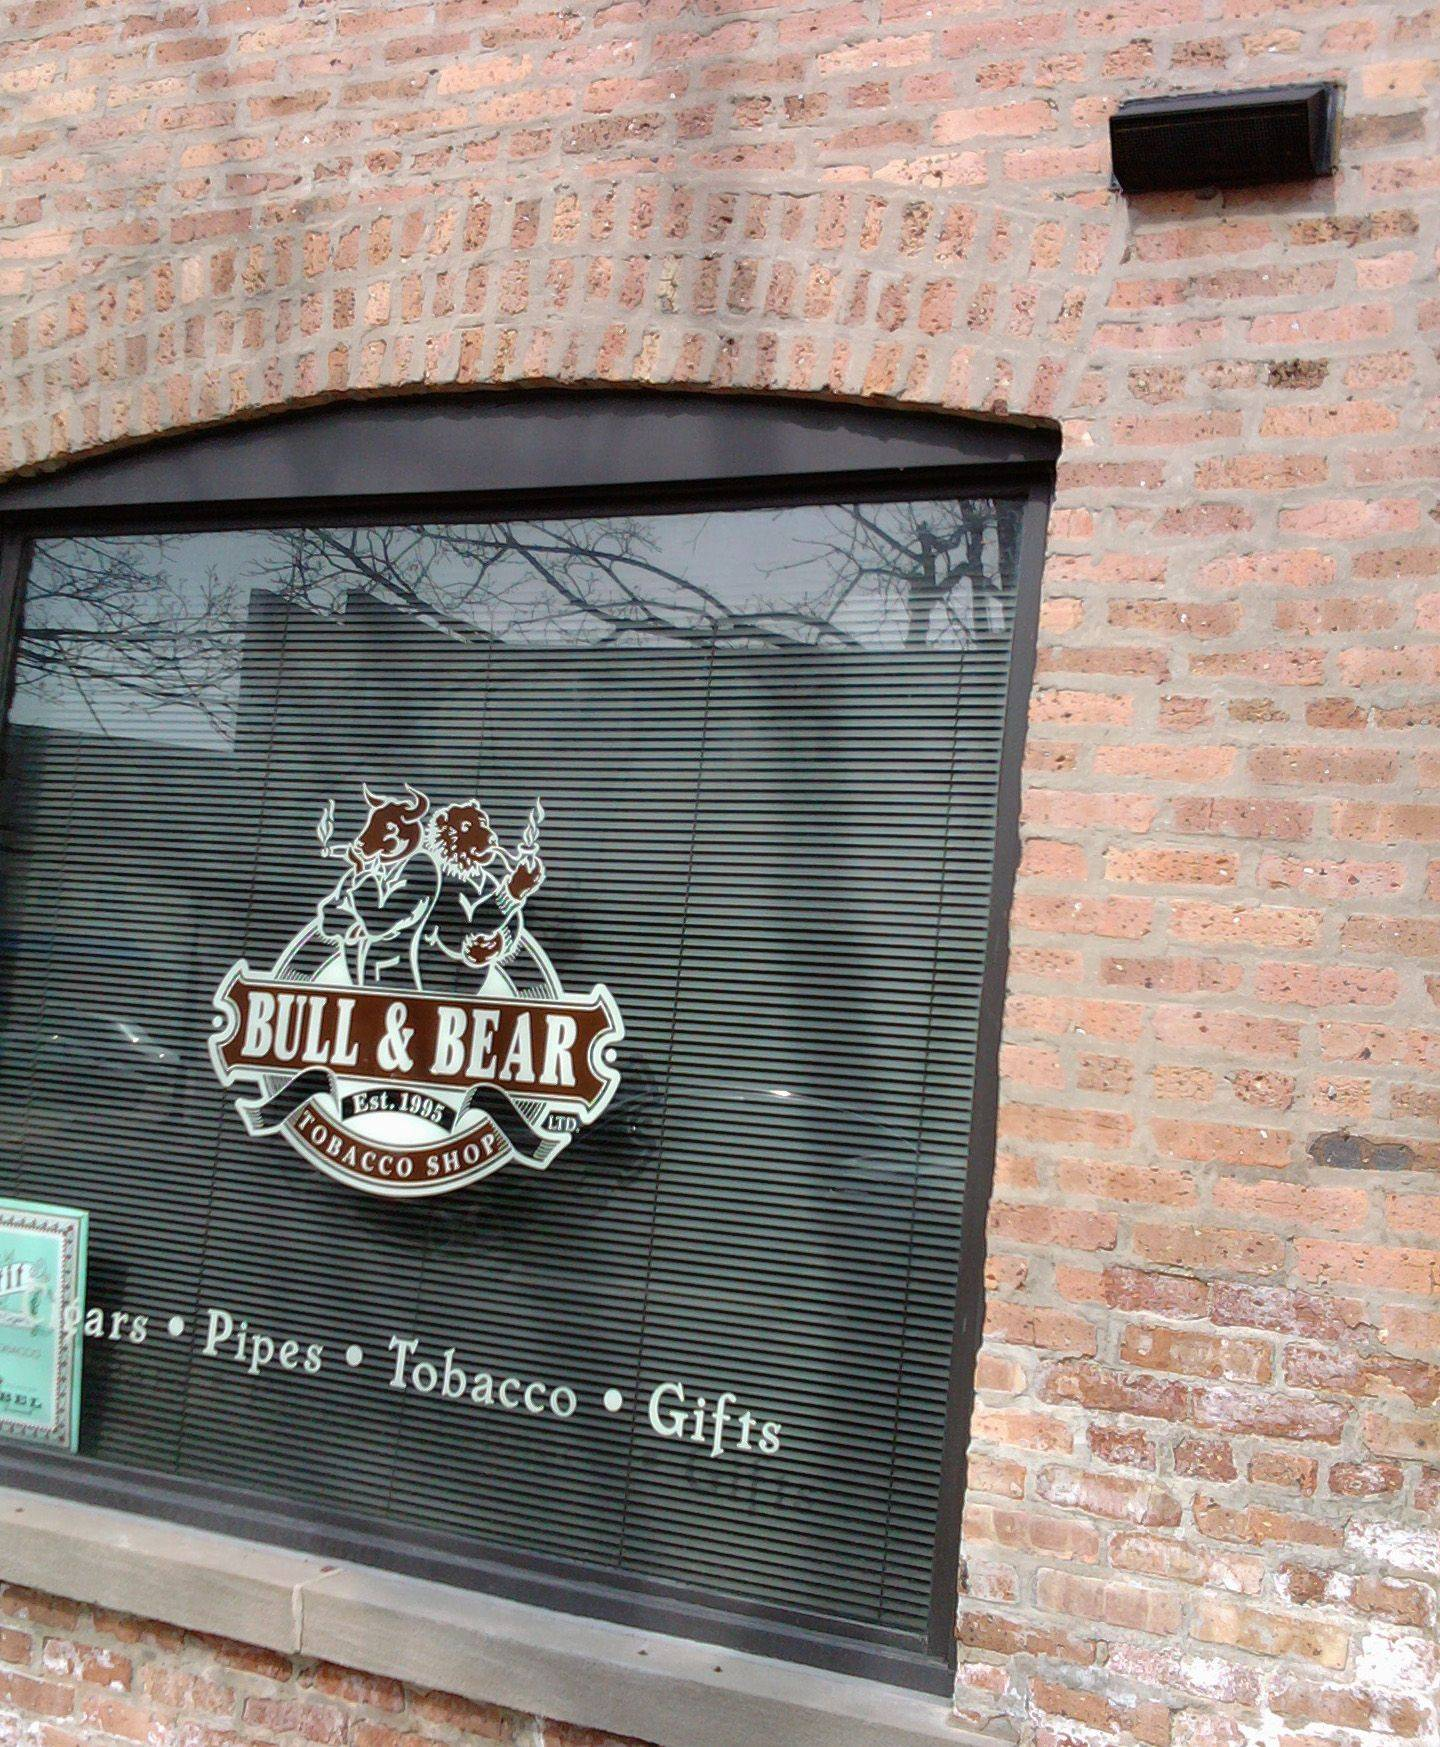 The Bull & Bear tobacco shop in St. Charles.